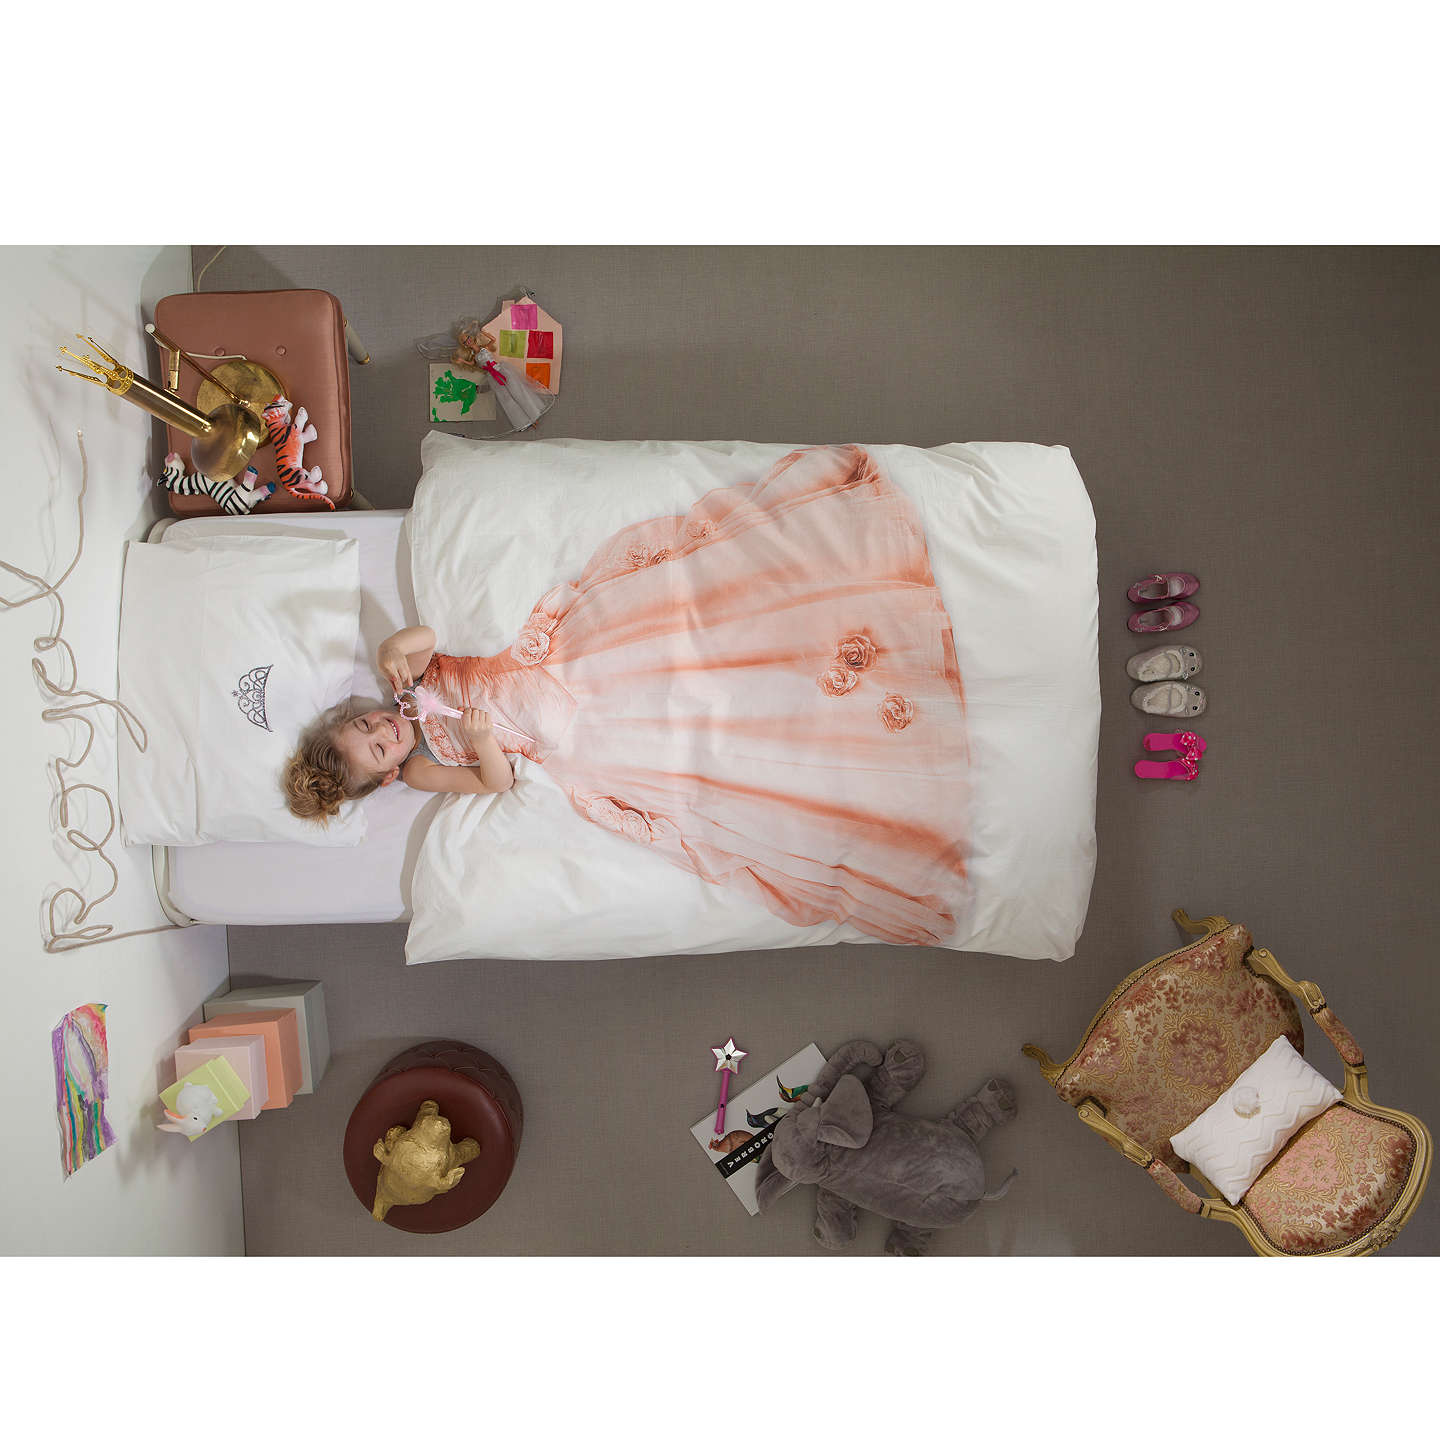 BuySnurk Princess Single Duvet Cover and Pillowcase Set Online at johnlewis.com